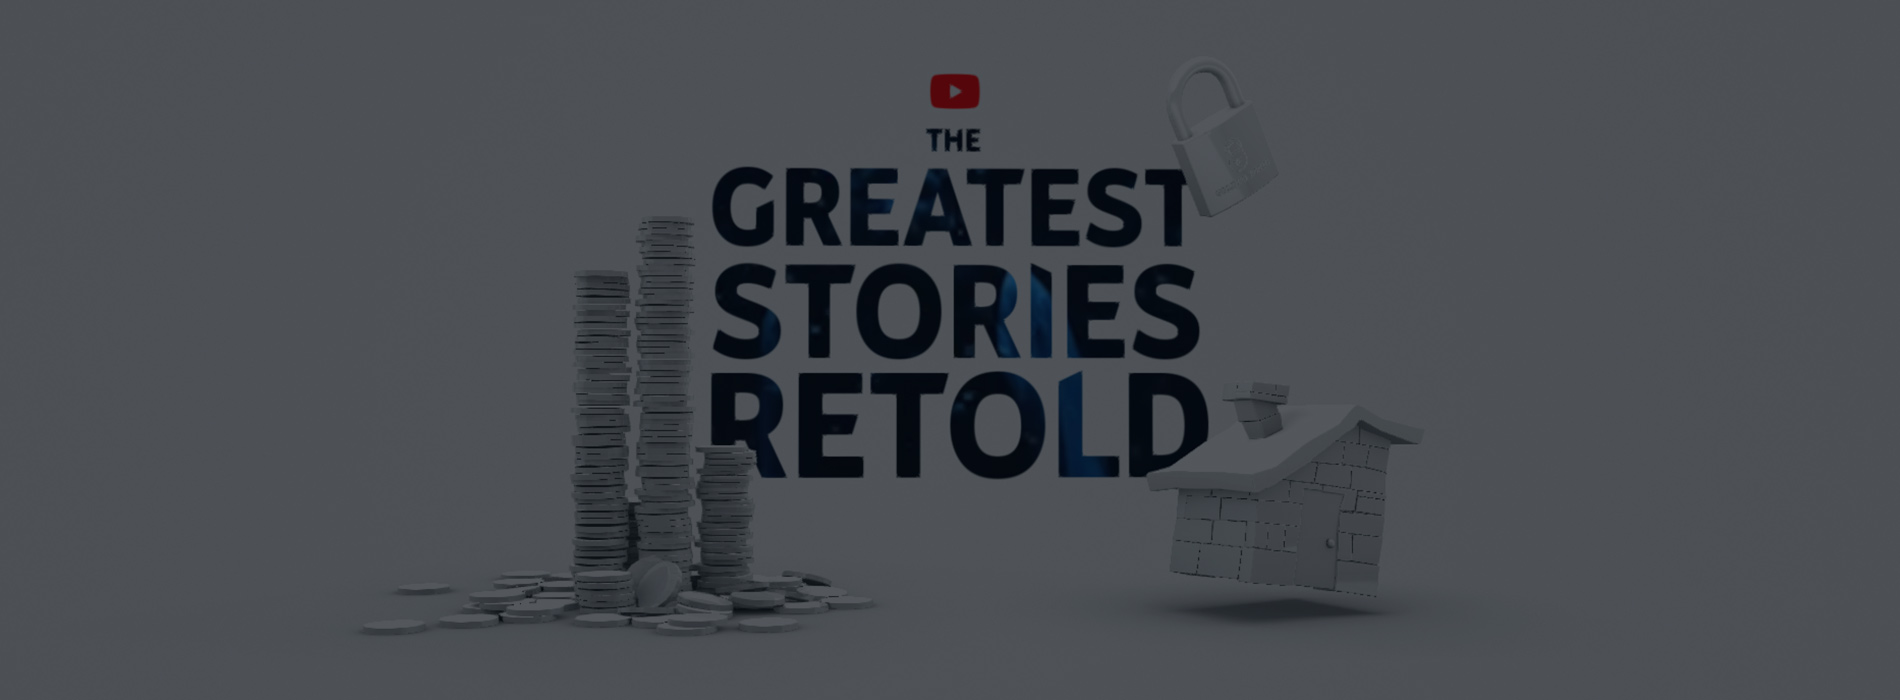 The Greatest Stories Retold